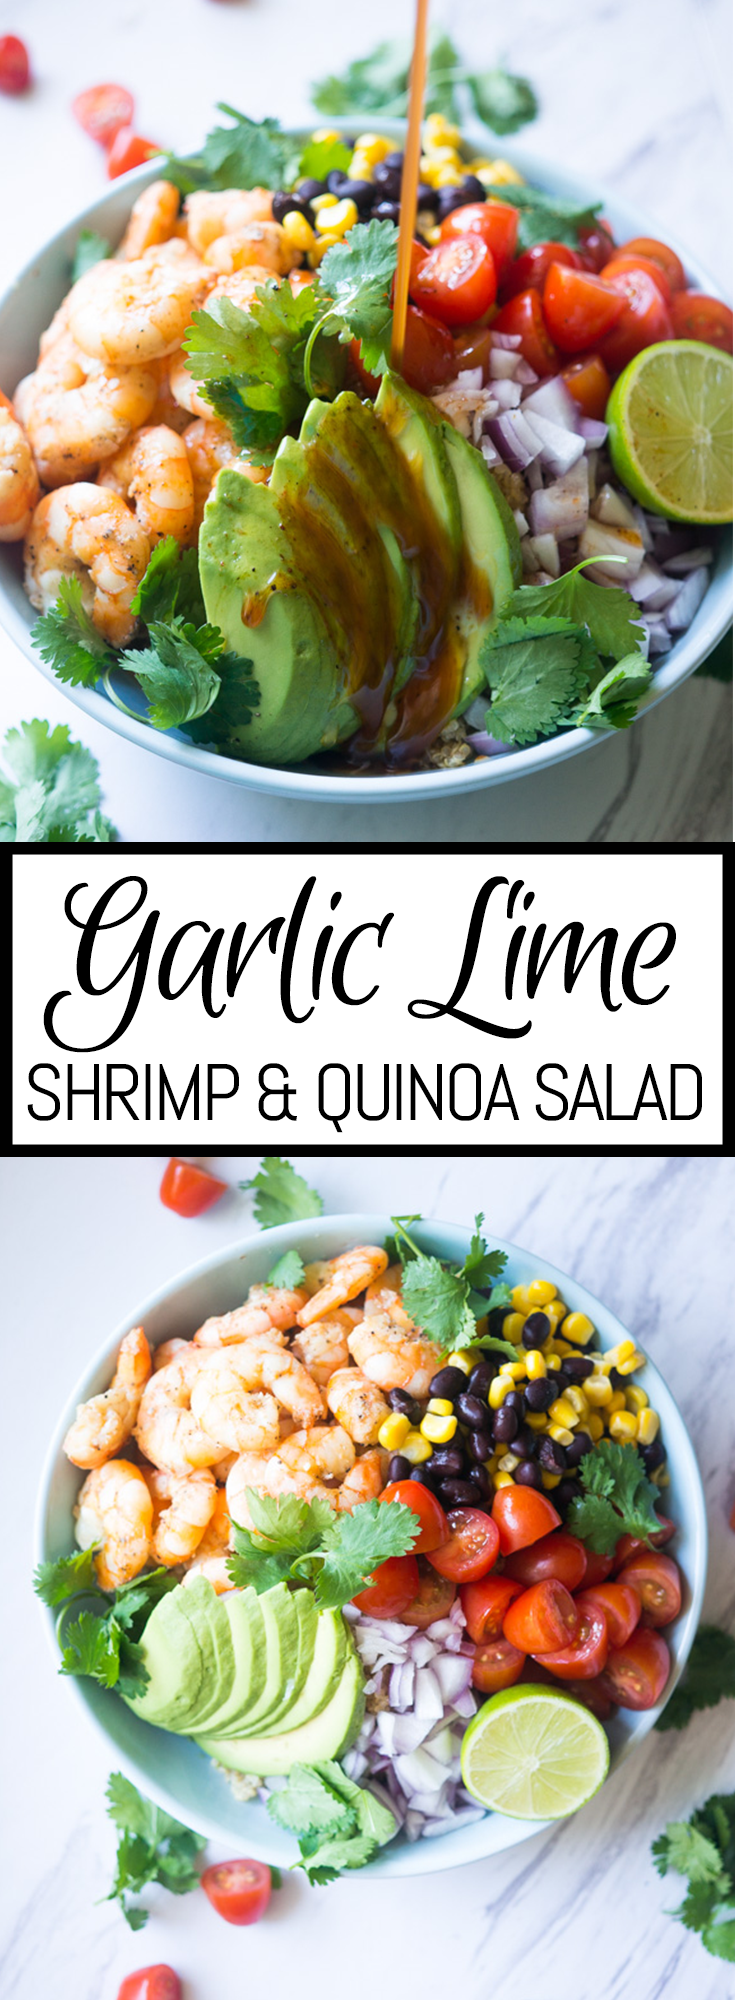 Garlic Lime Shrimp and Quinoa Salad **minus the shrimp **Garlic Lime Shrimp and Quinoa Salad. A zesty, nutrient dense salad that will wow your guests with its amazing fresh flavors!